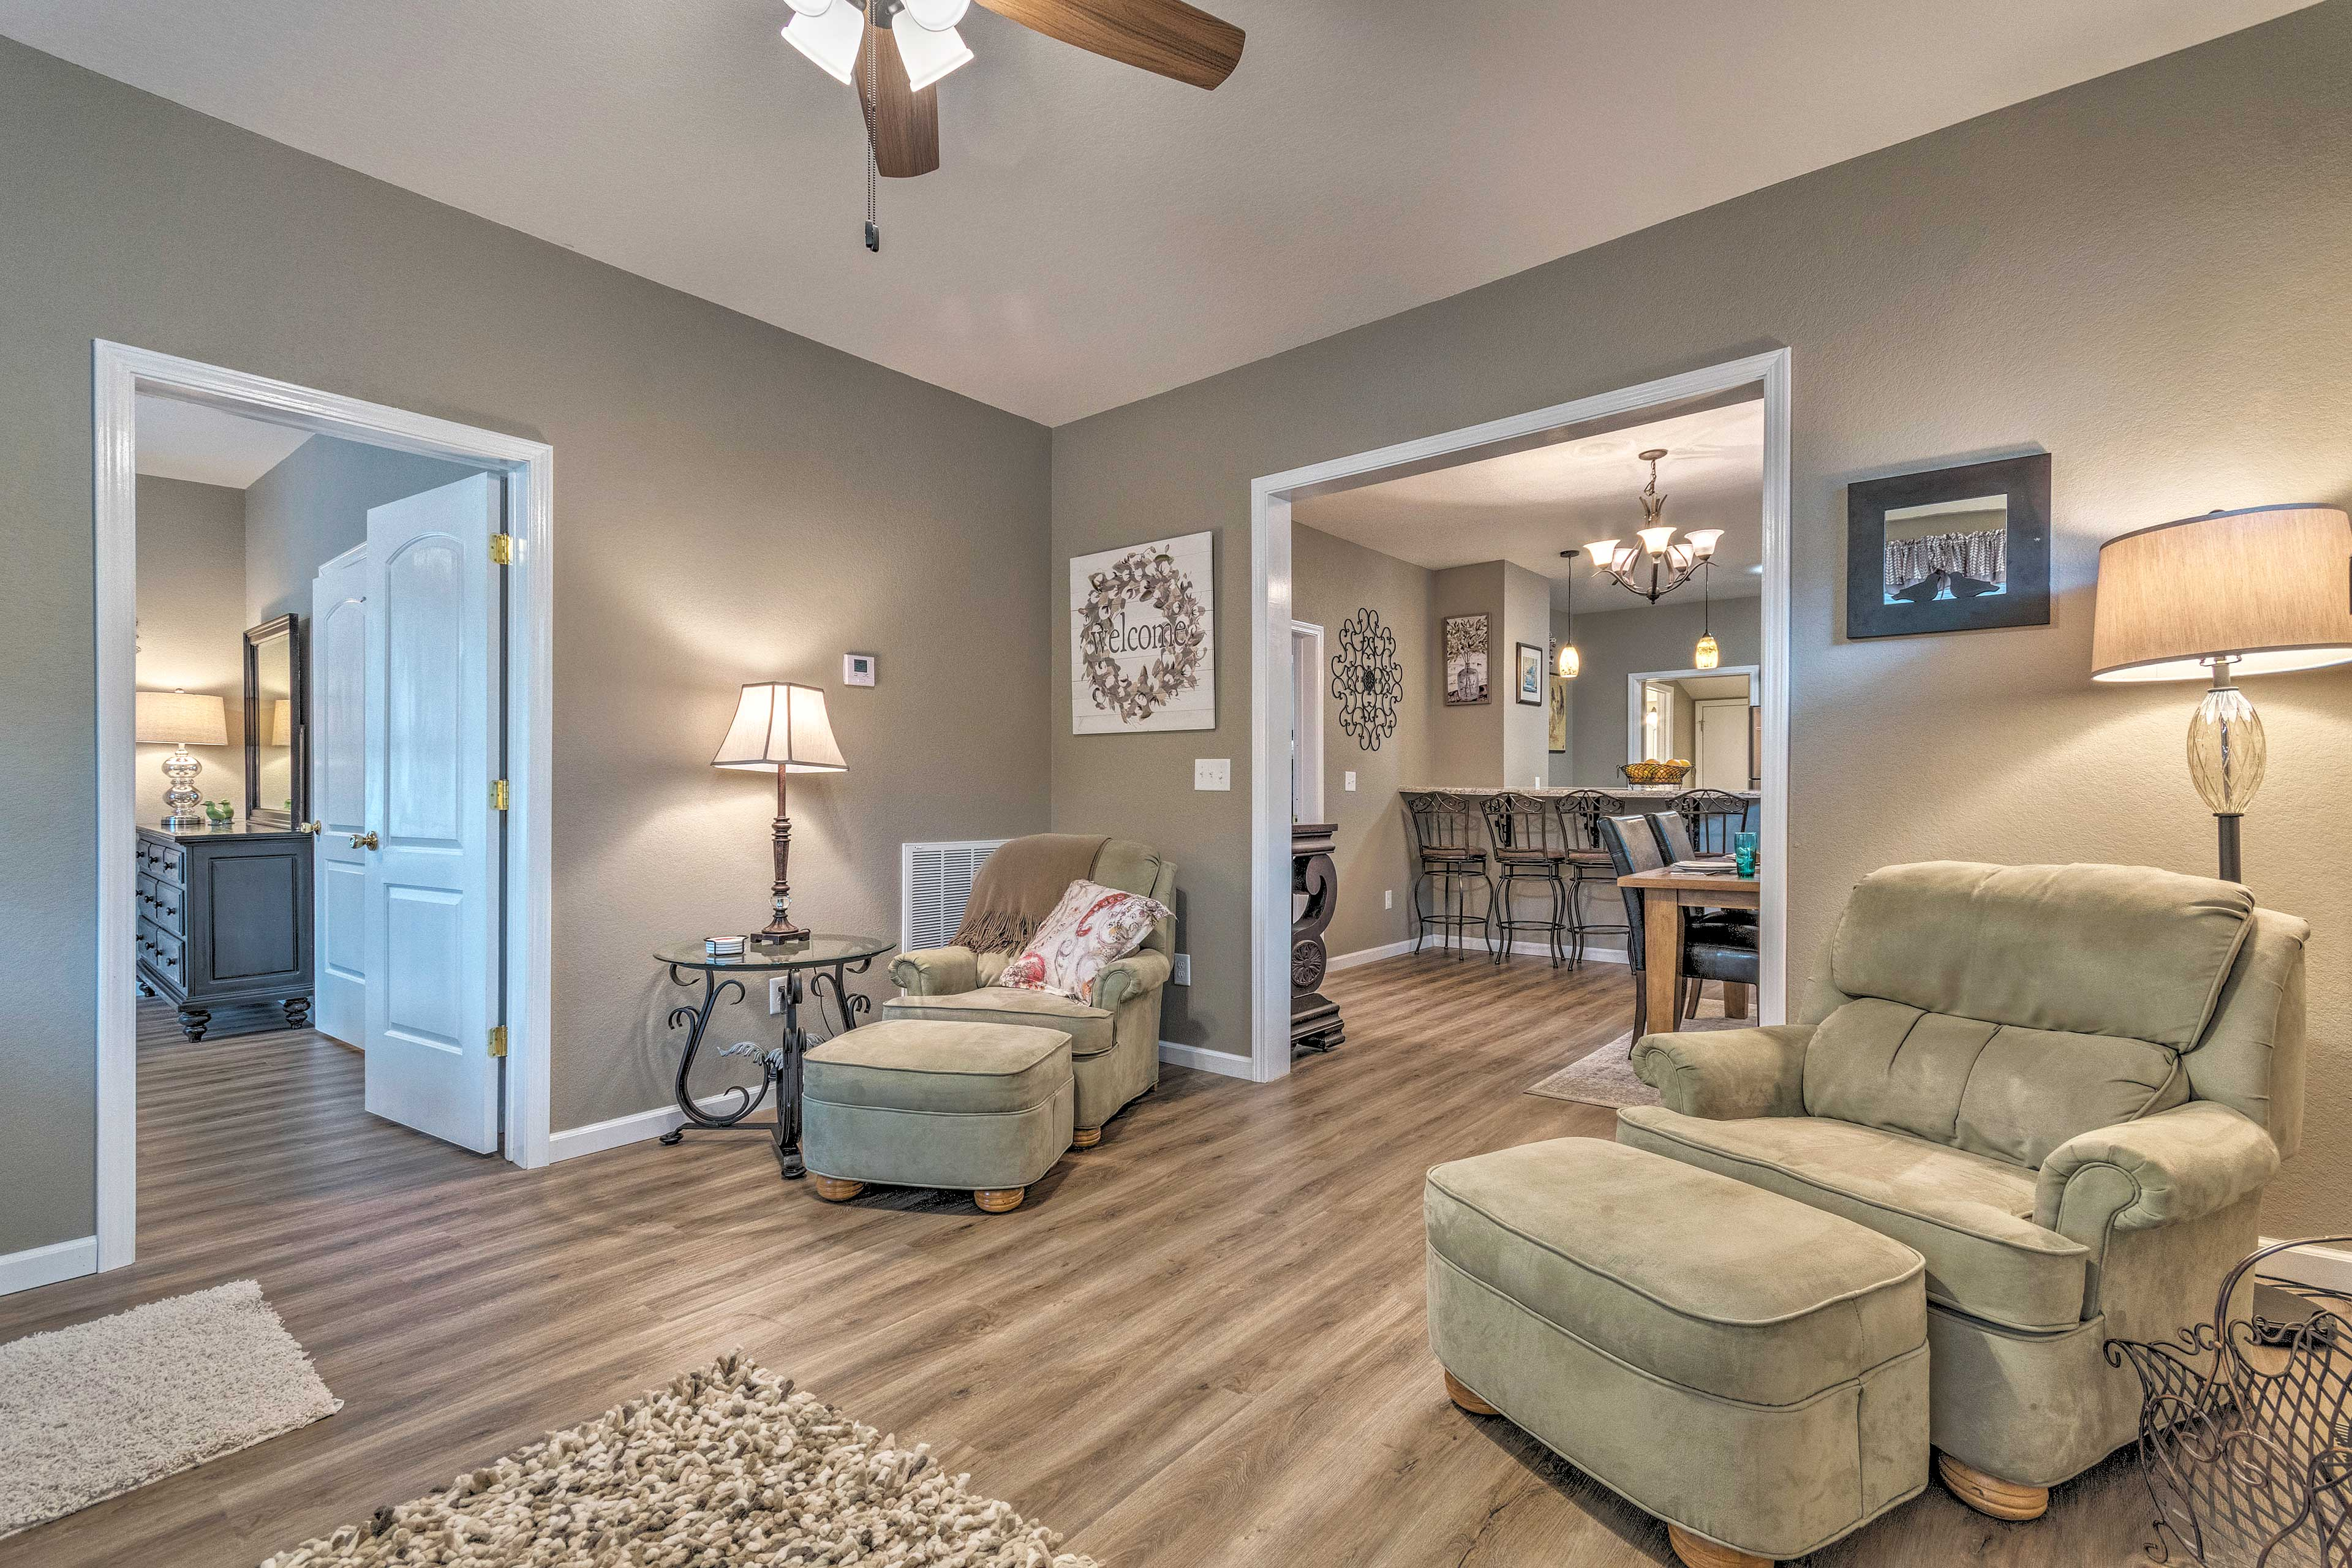 The whole interior was recently updated and offers top-of-the-line amenities.